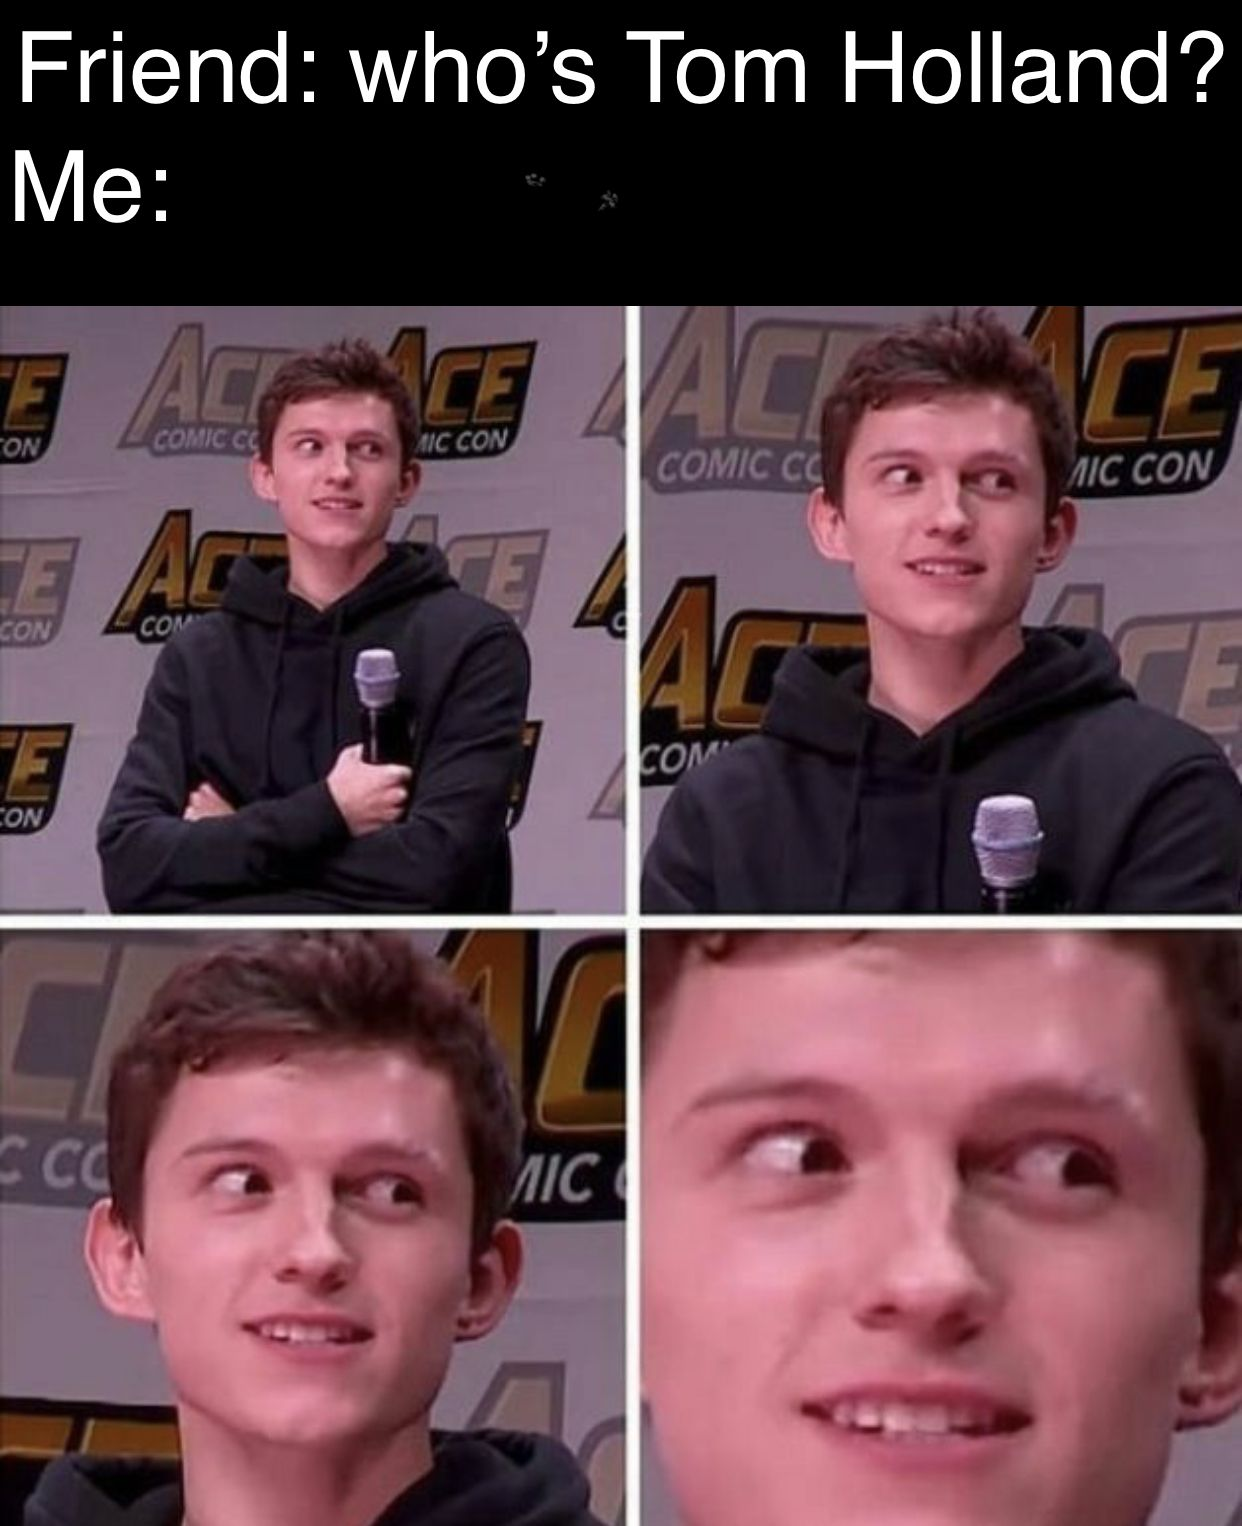 Pin by callie on Funny memes   Tom holland spiderman, Tom holland ...